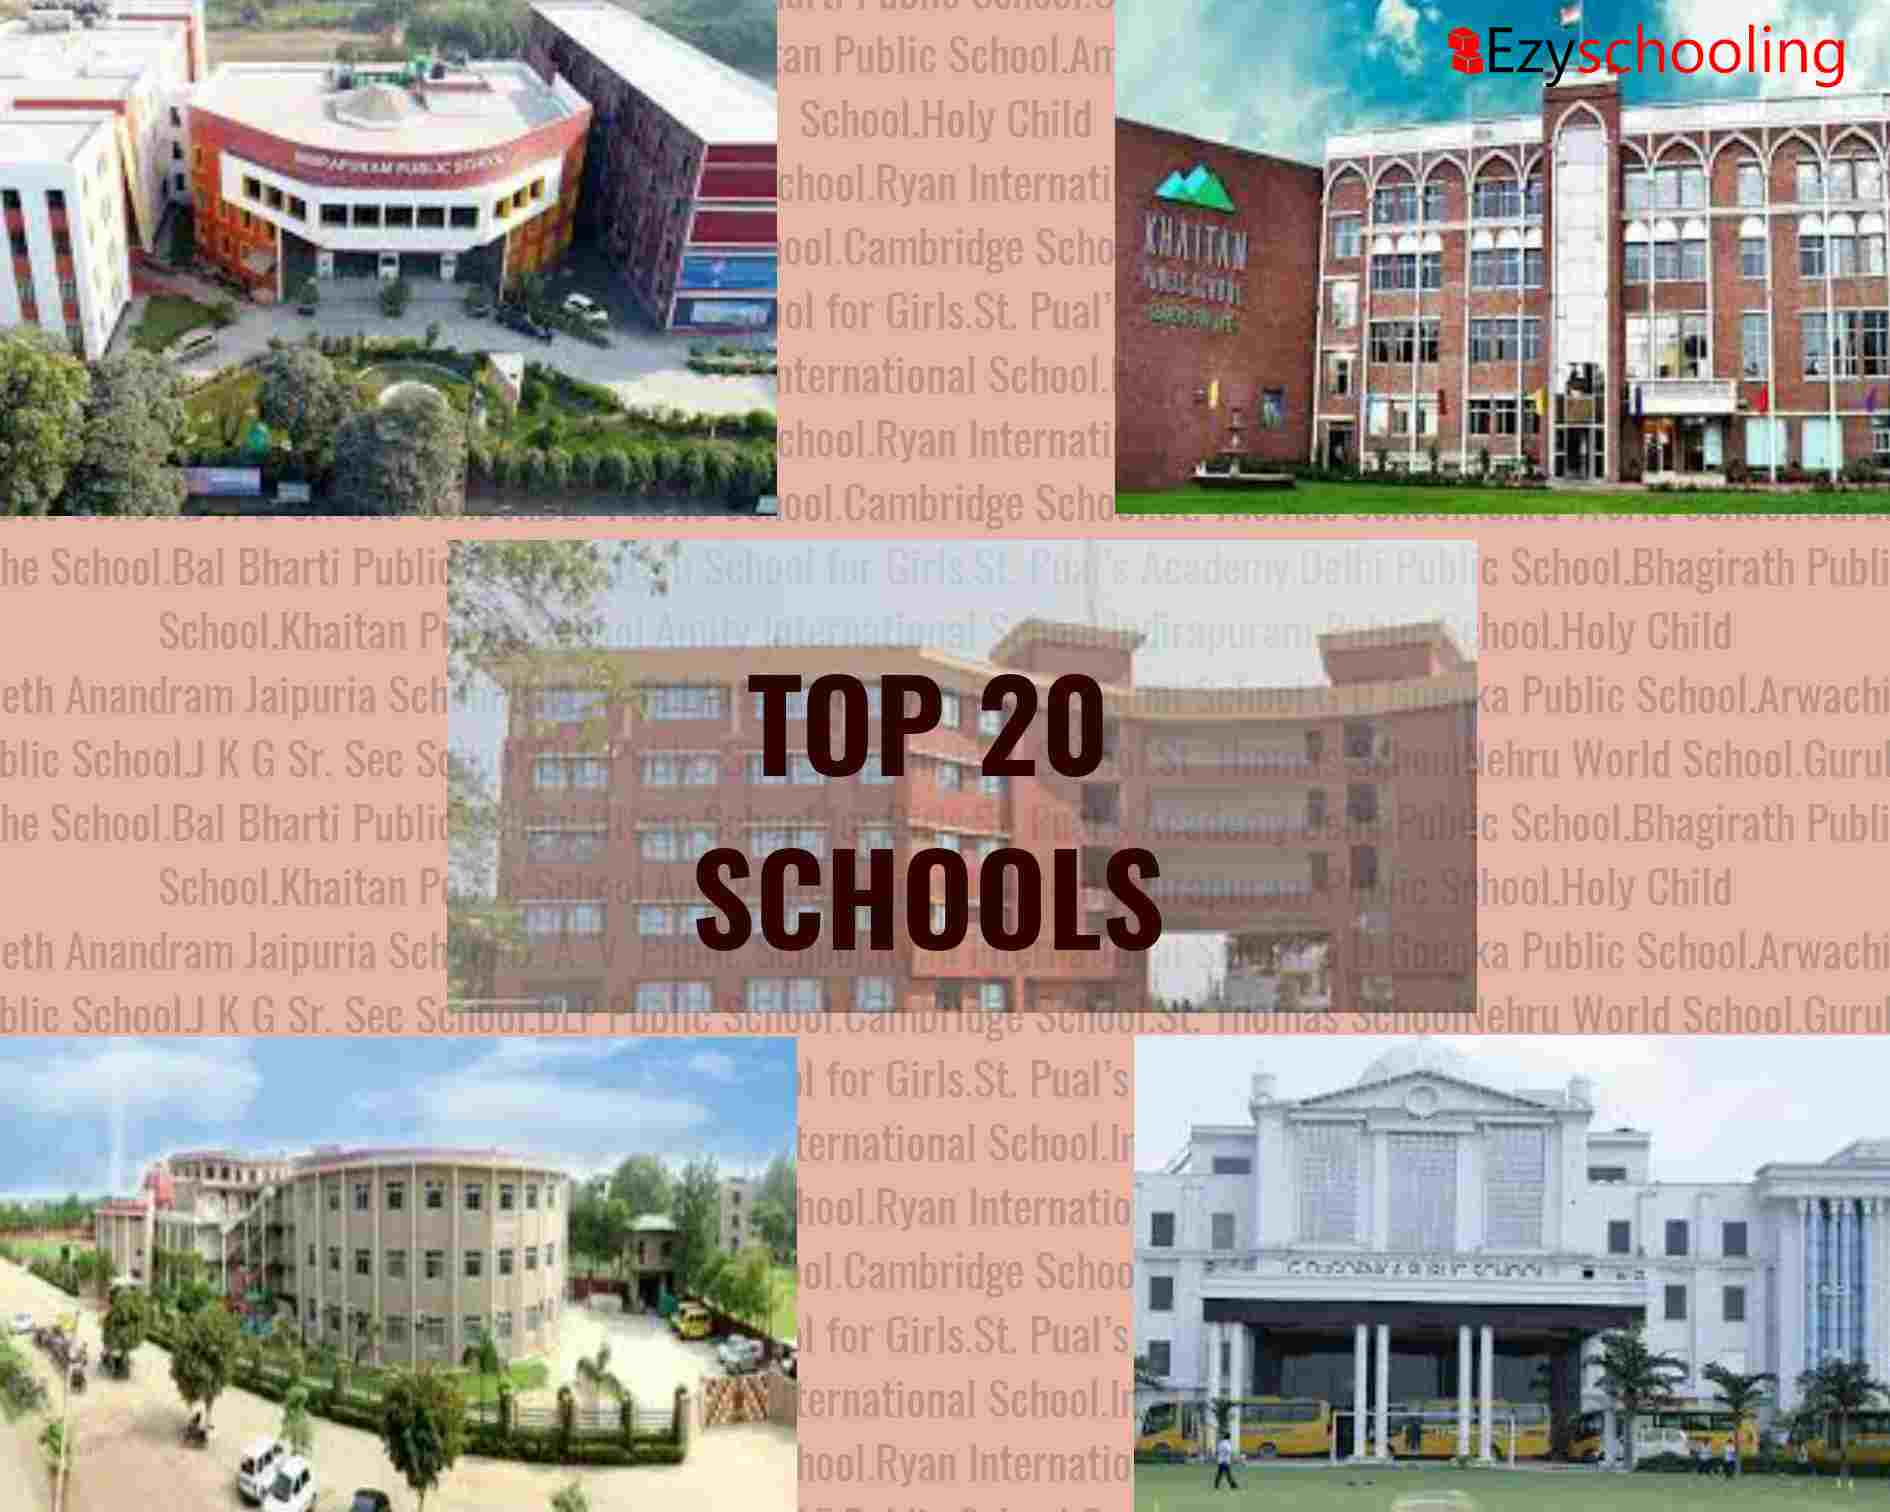 Top 20 Schools in Ghaziabad